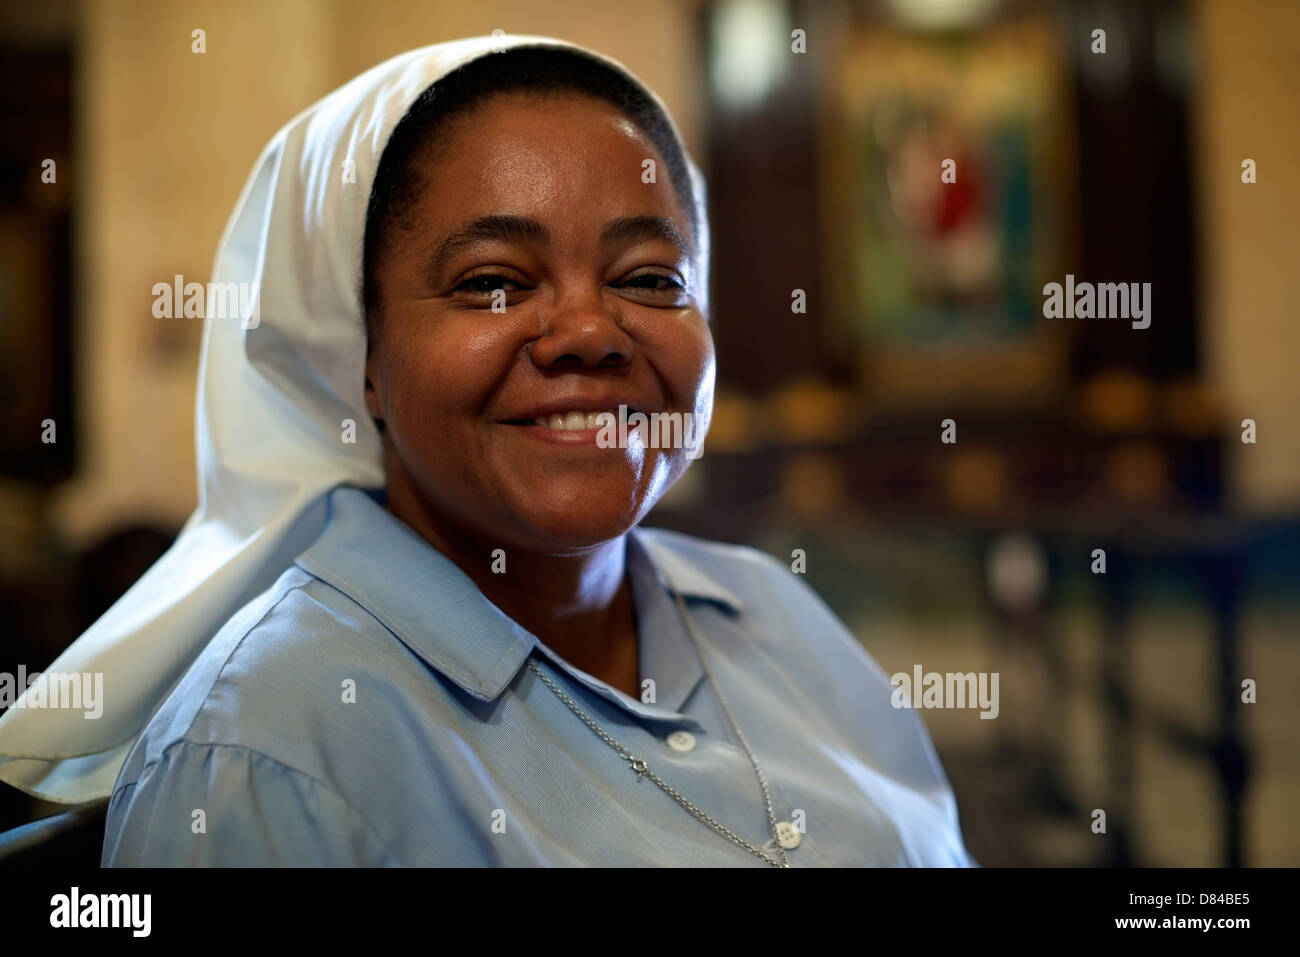 Woman and religion, portrait of catholic nun praying in church and looking at camera - Stock Image